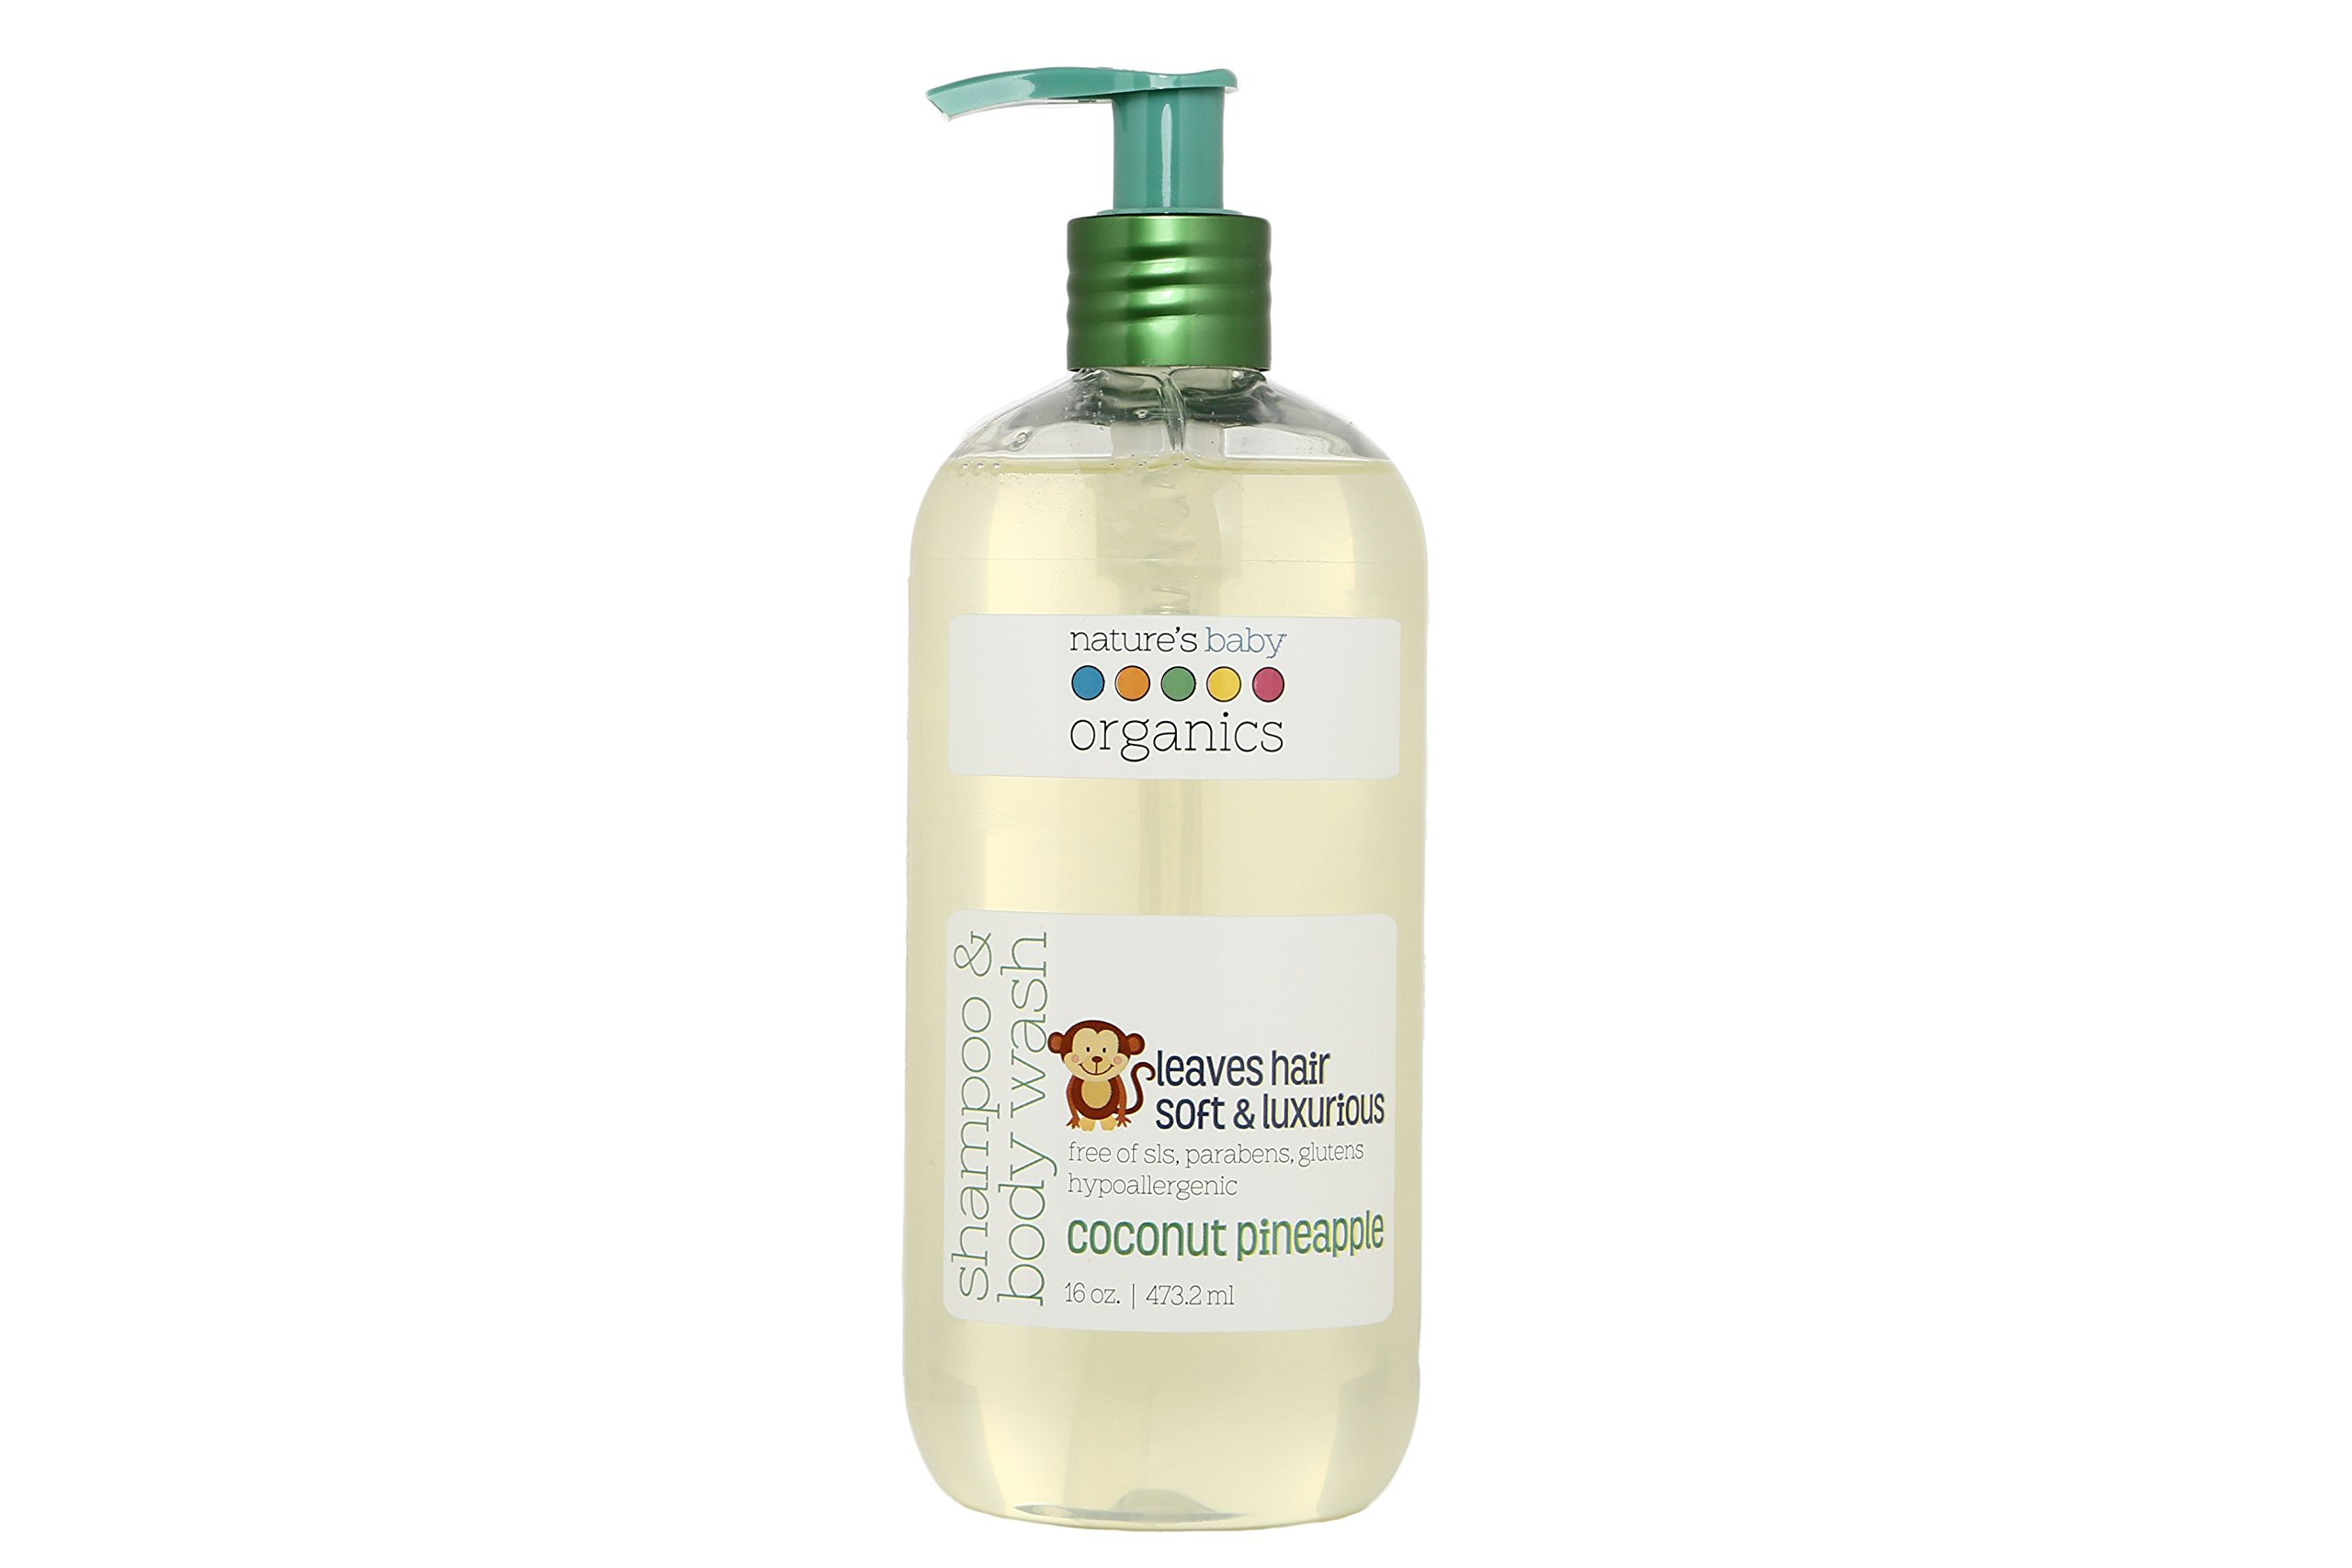 Nature's Baby Organics Shampoo & Body Wash, Coconut Pineapple, 16 oz. |Babies, Kids, Adults! Moisturizing, Soft, Gentle, Rich, Hypoallergenic | No Parabens, SLS, Glutens